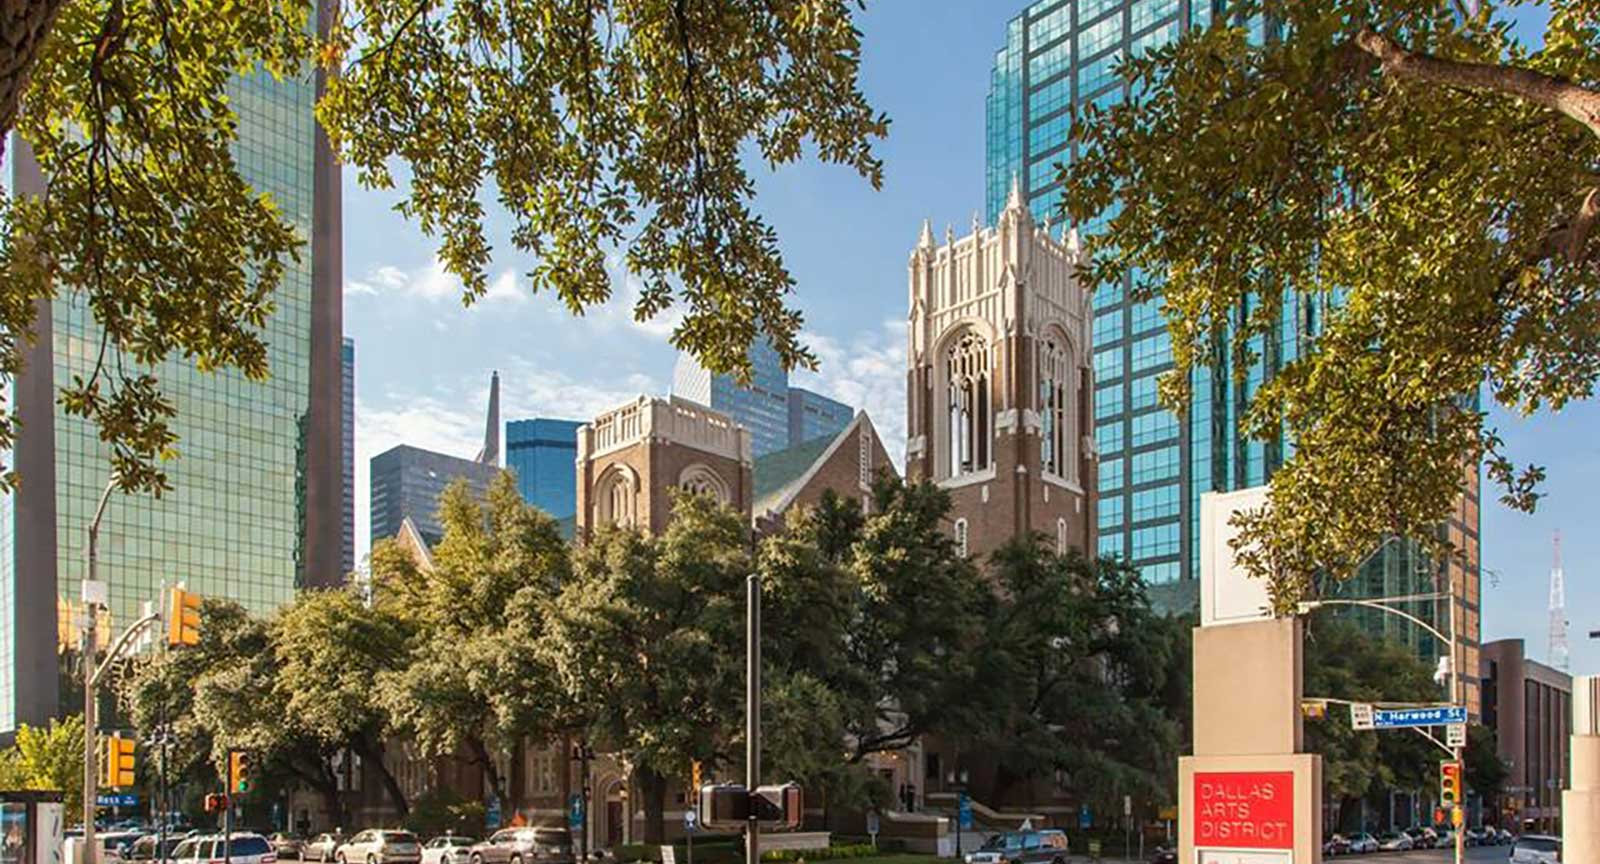 Dallas Arts District First United Methodist Church